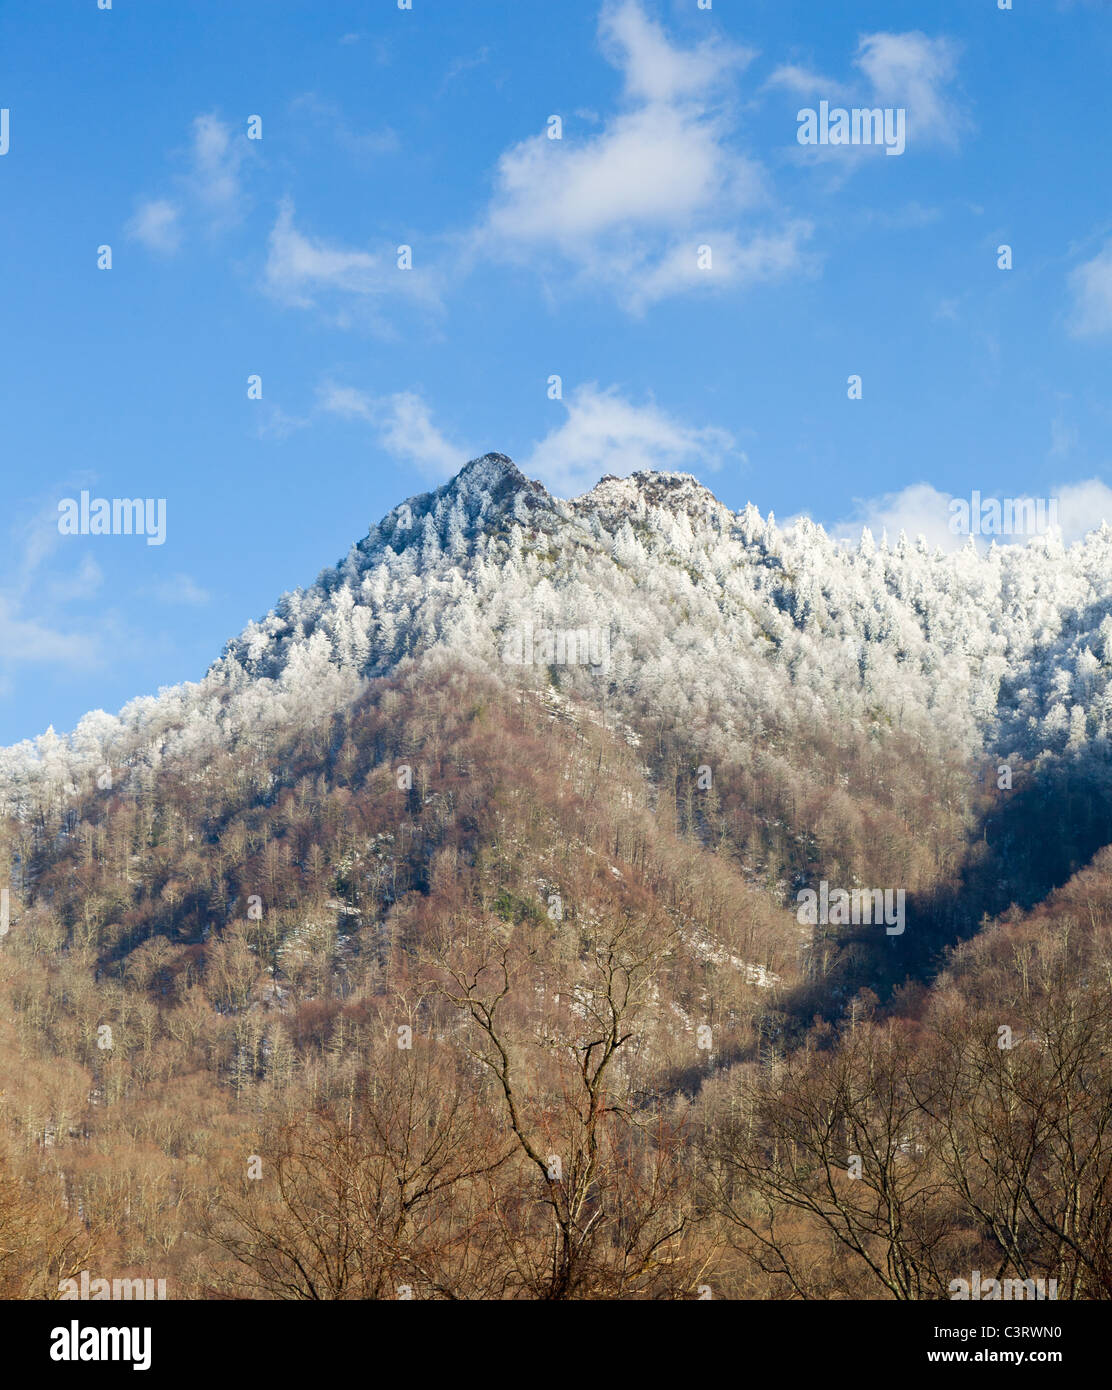 Famous Great Smoky Mountains National Park view of Chimney Tops covered in snow in early spring, USA - Stock Image